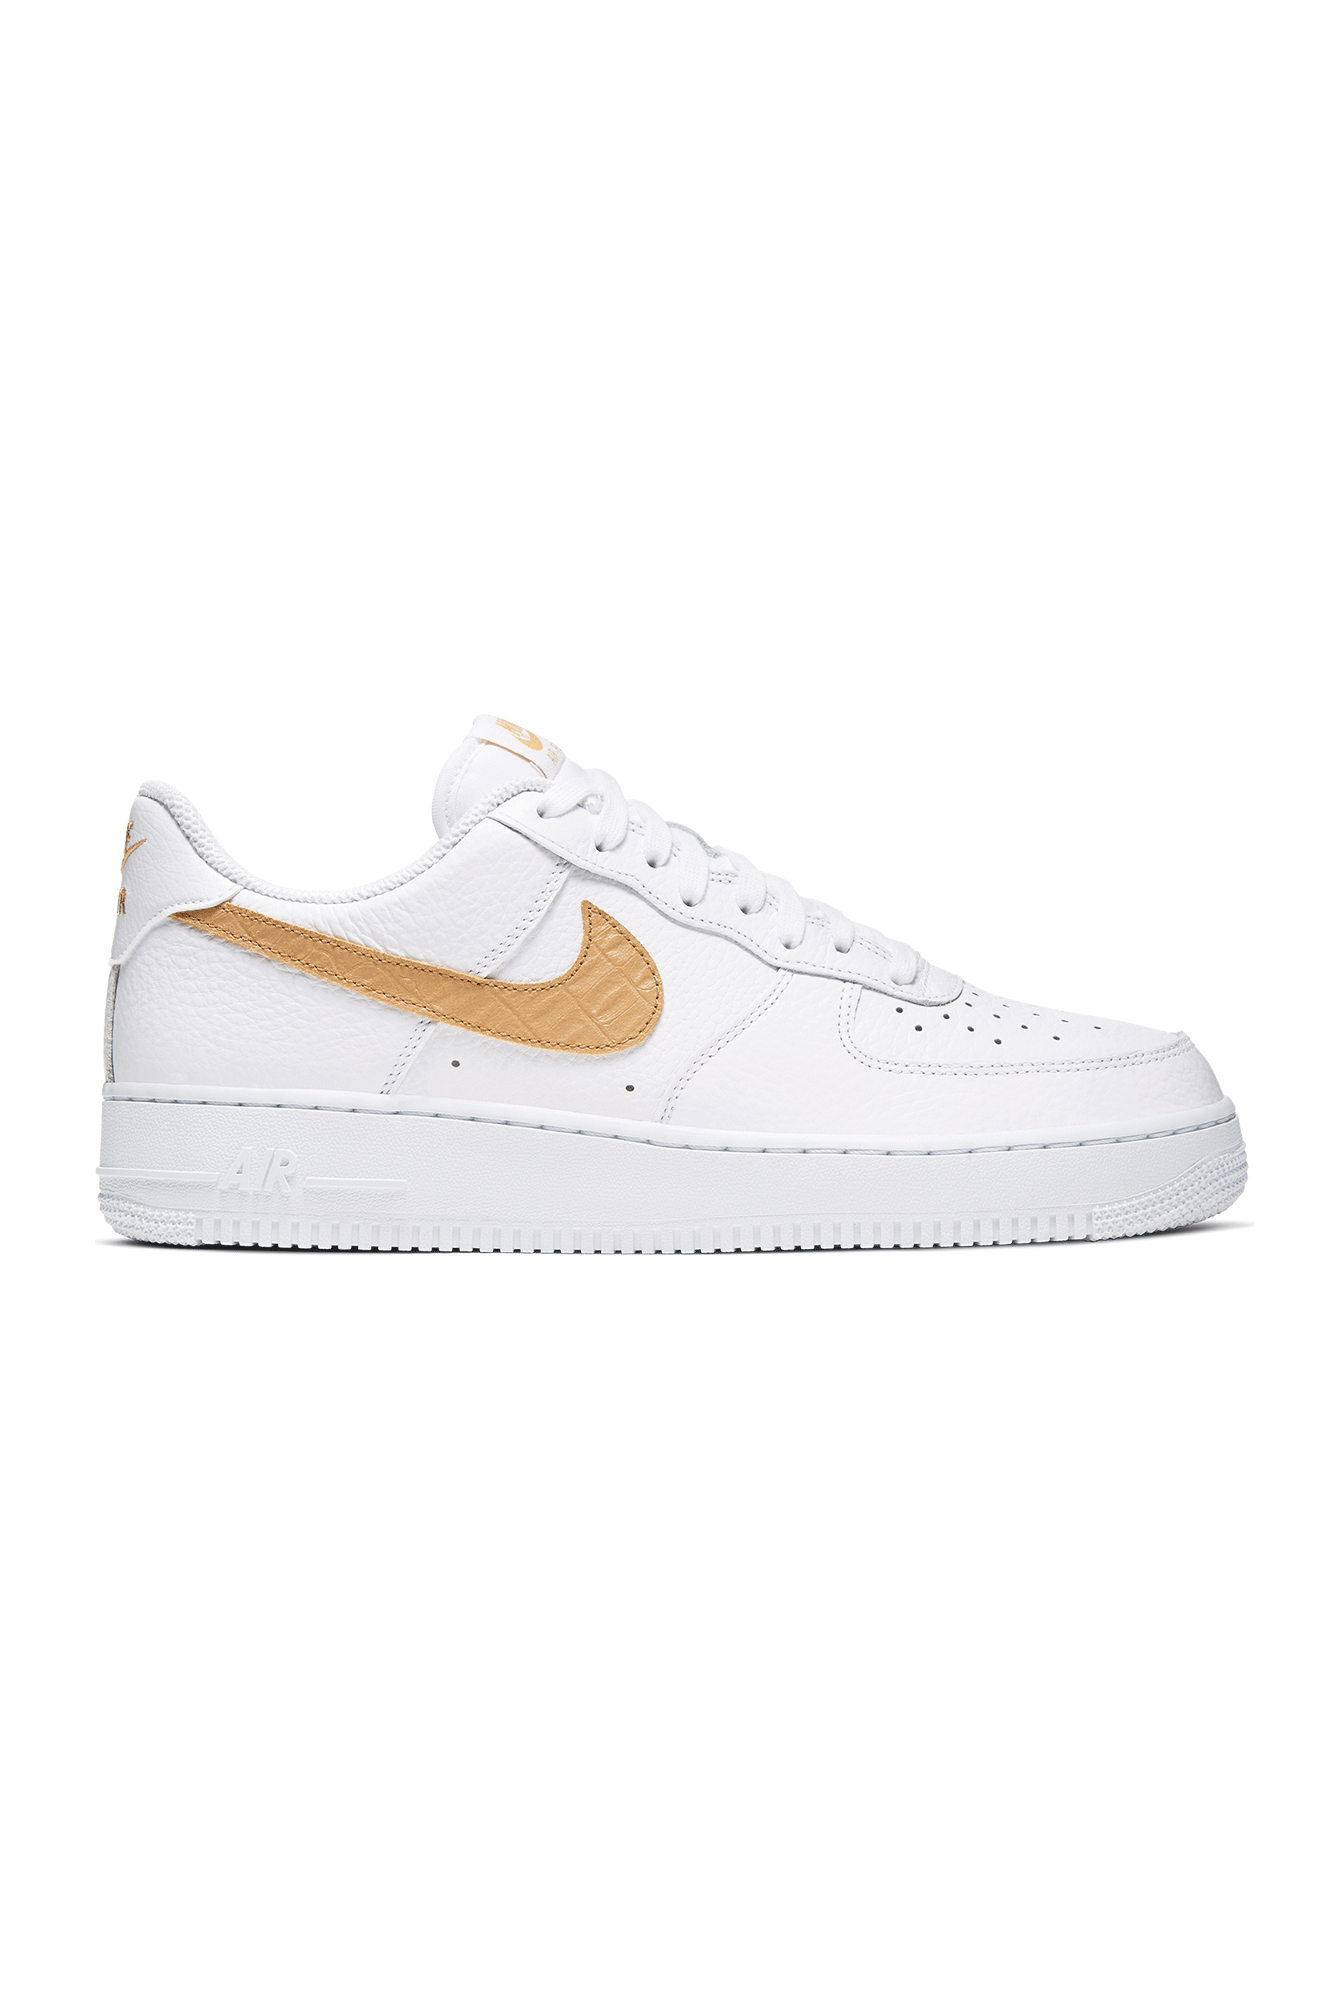 Nike Sneakers Air Force 1 LV8 White CW7567-#000#101#6 - One Block Down